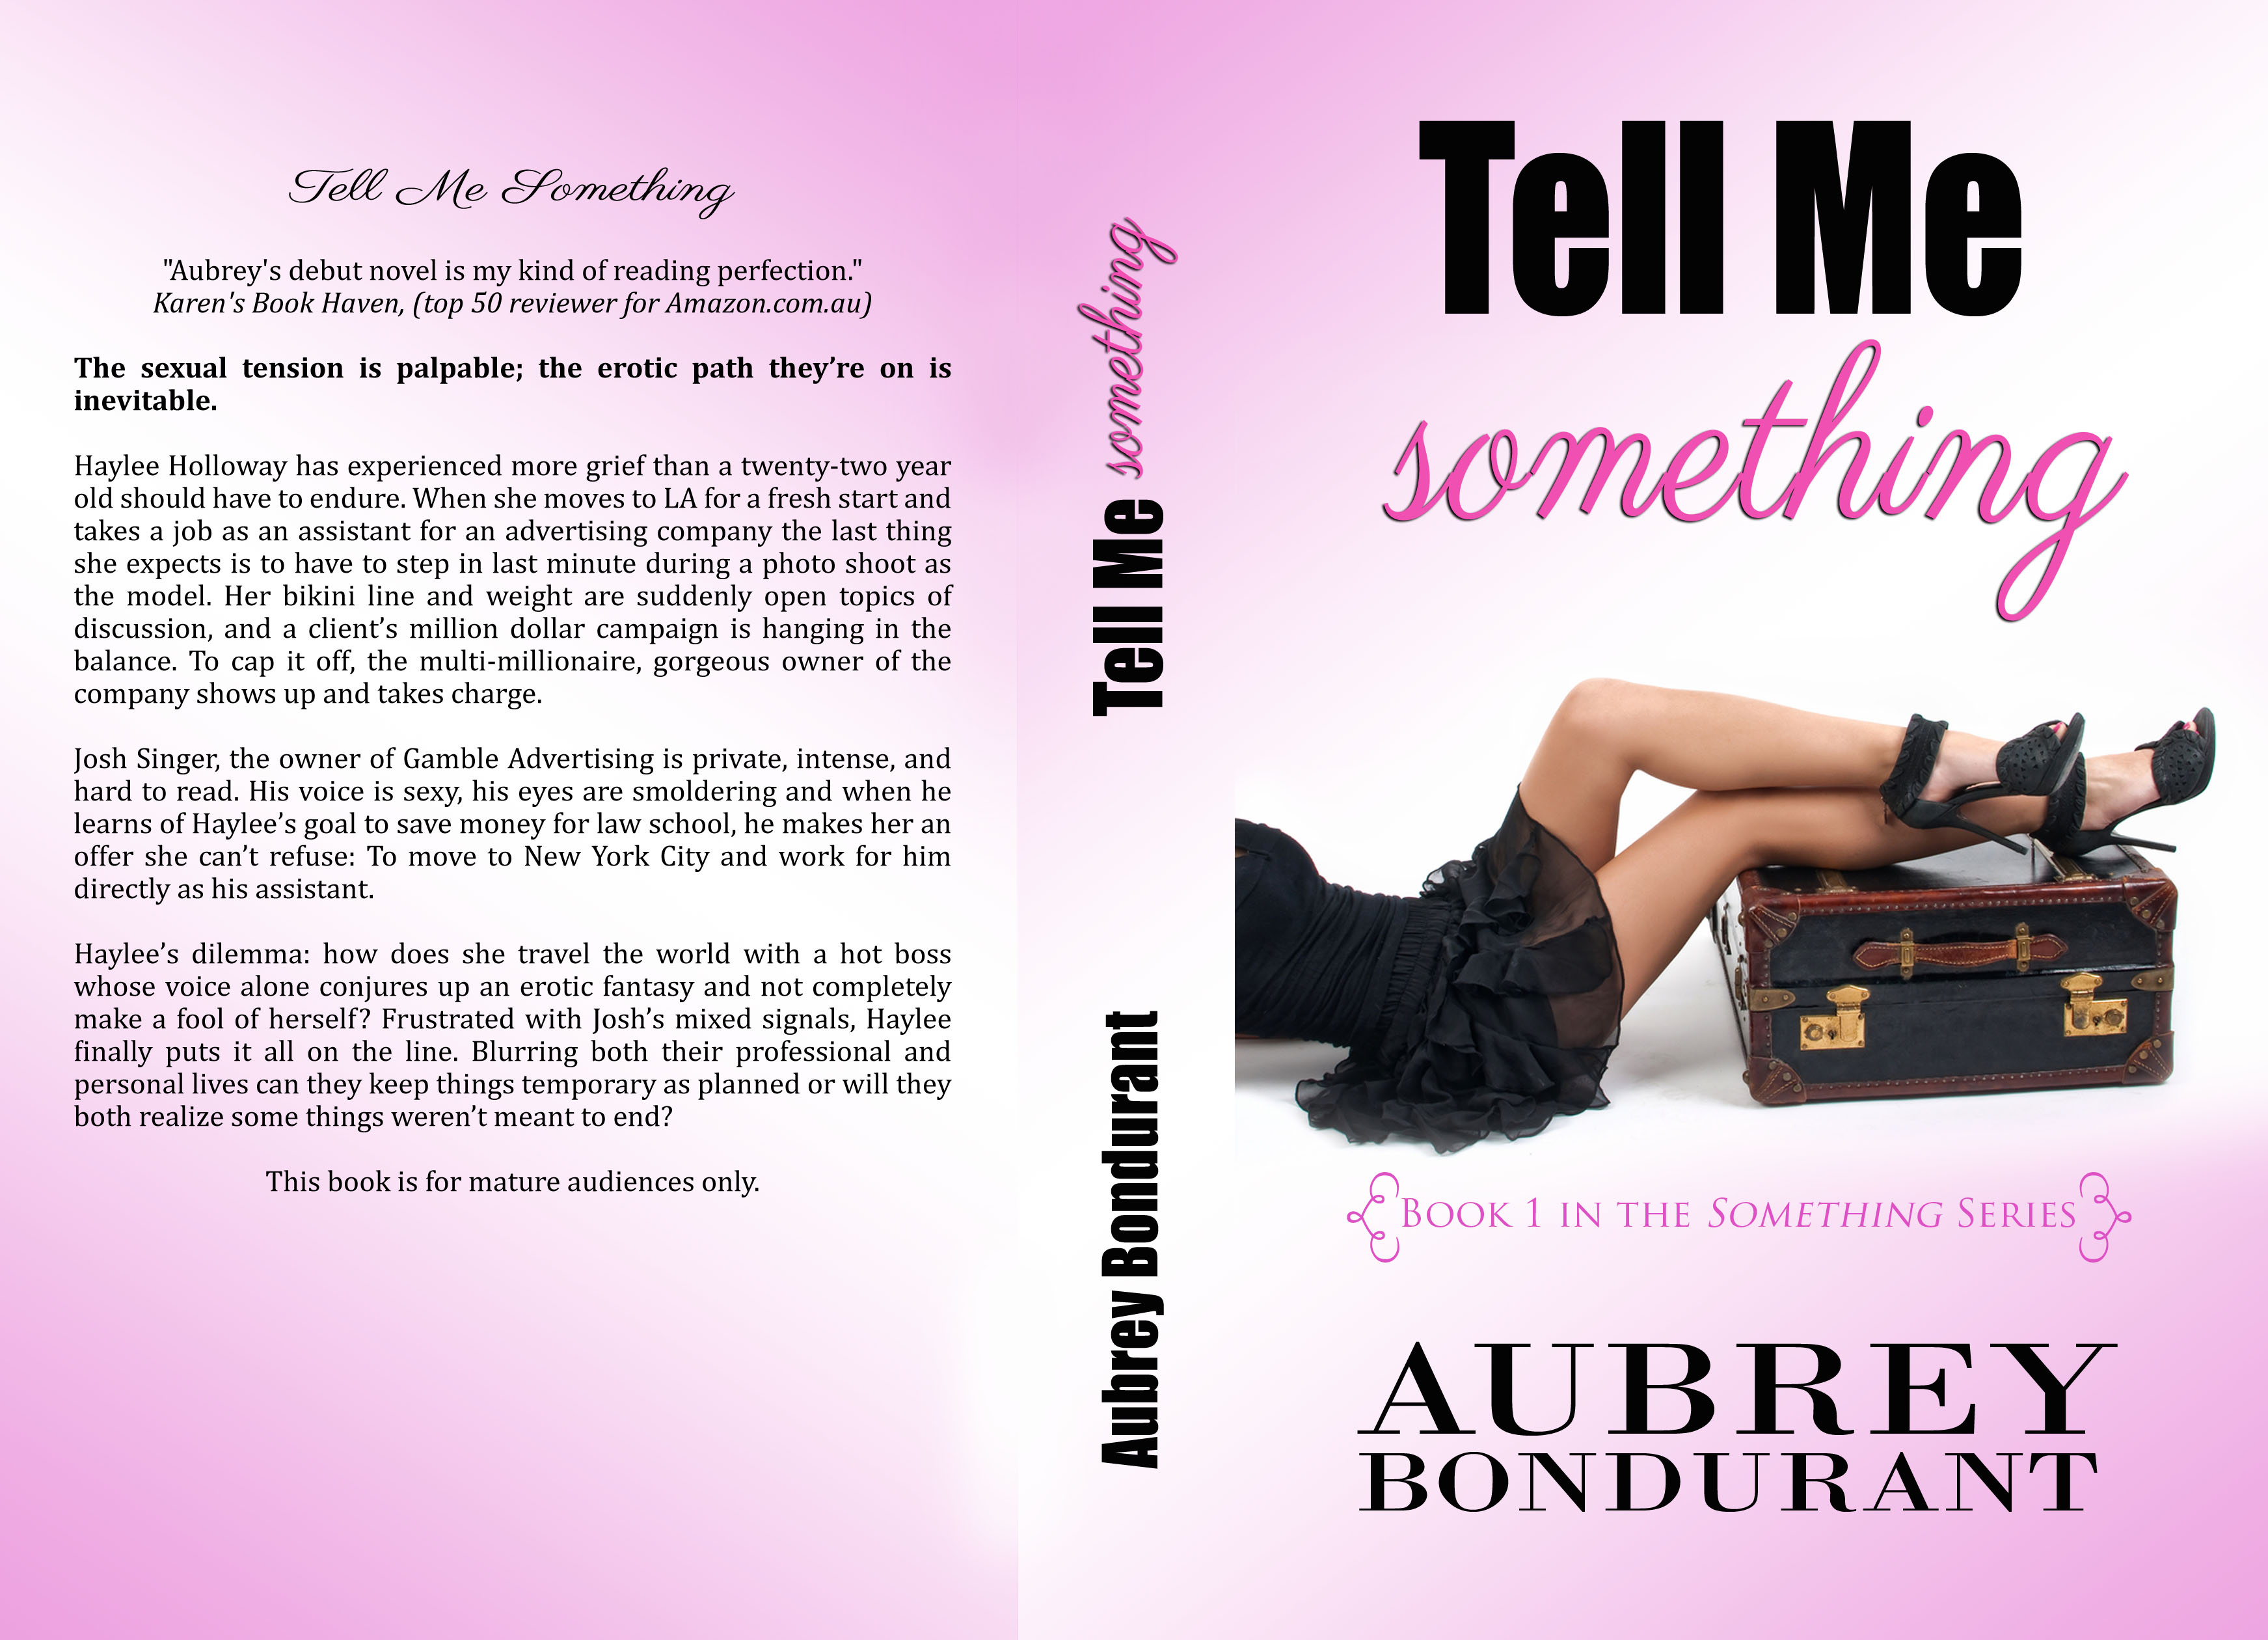 Love Aubrey Book Cover : Cover reveal for tell me something hard copy aubrey